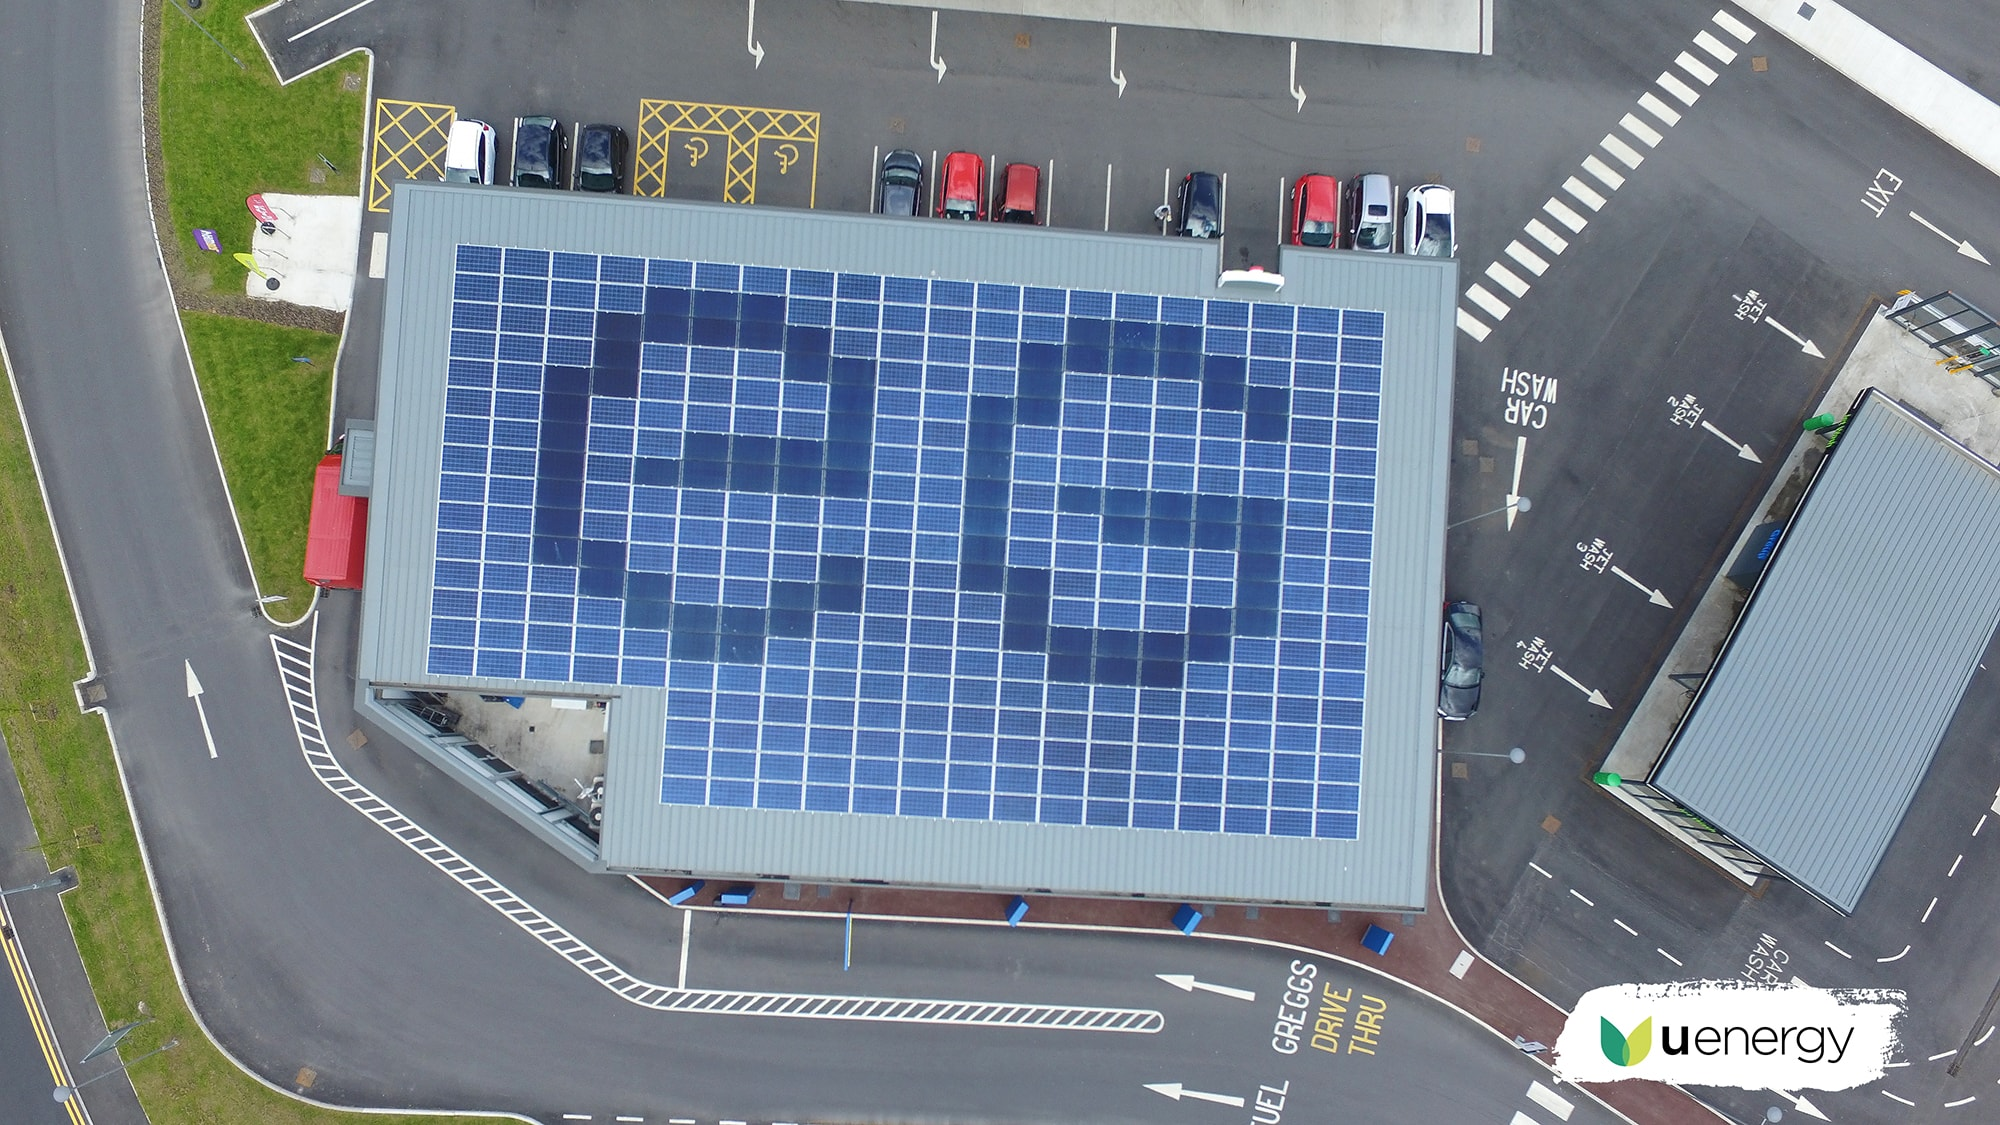 Euro Garages Logo integrated in Solar Panels System by U Energy Solar UK